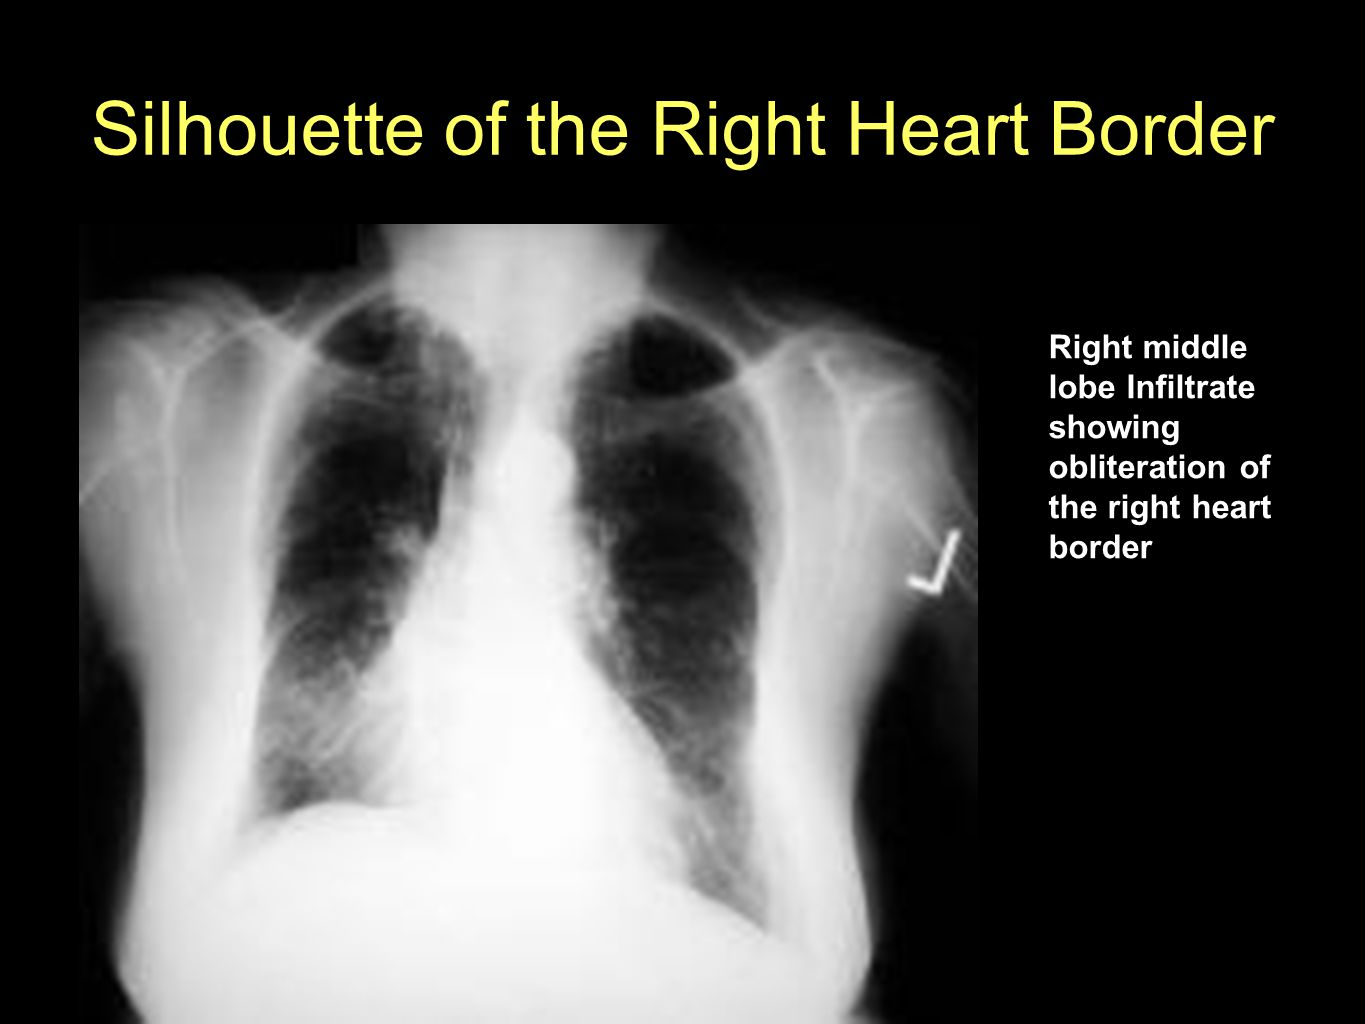 Silhouette of the Right Heart Border